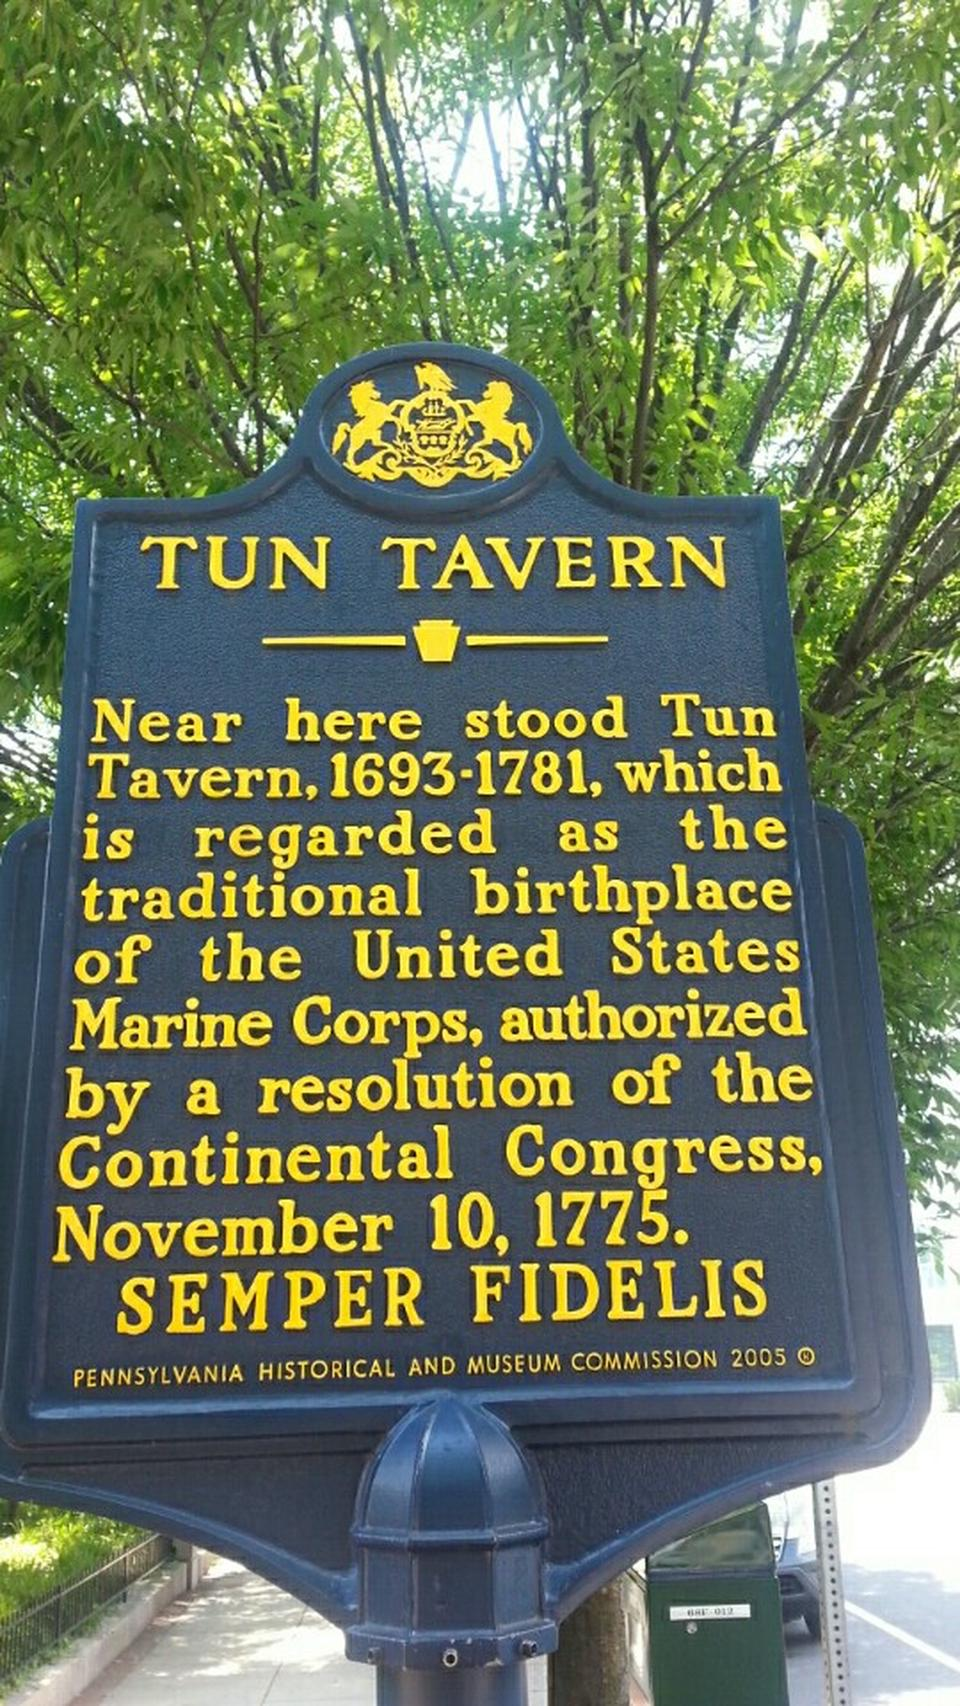 This historical marker, placed on 11/11/2005, serves to commemorate Tun Tavern and it's establishment of the United States Marine Corps on November 10, 1775. Marines celebrate this birthday every year with a formal ball. (Google Images)